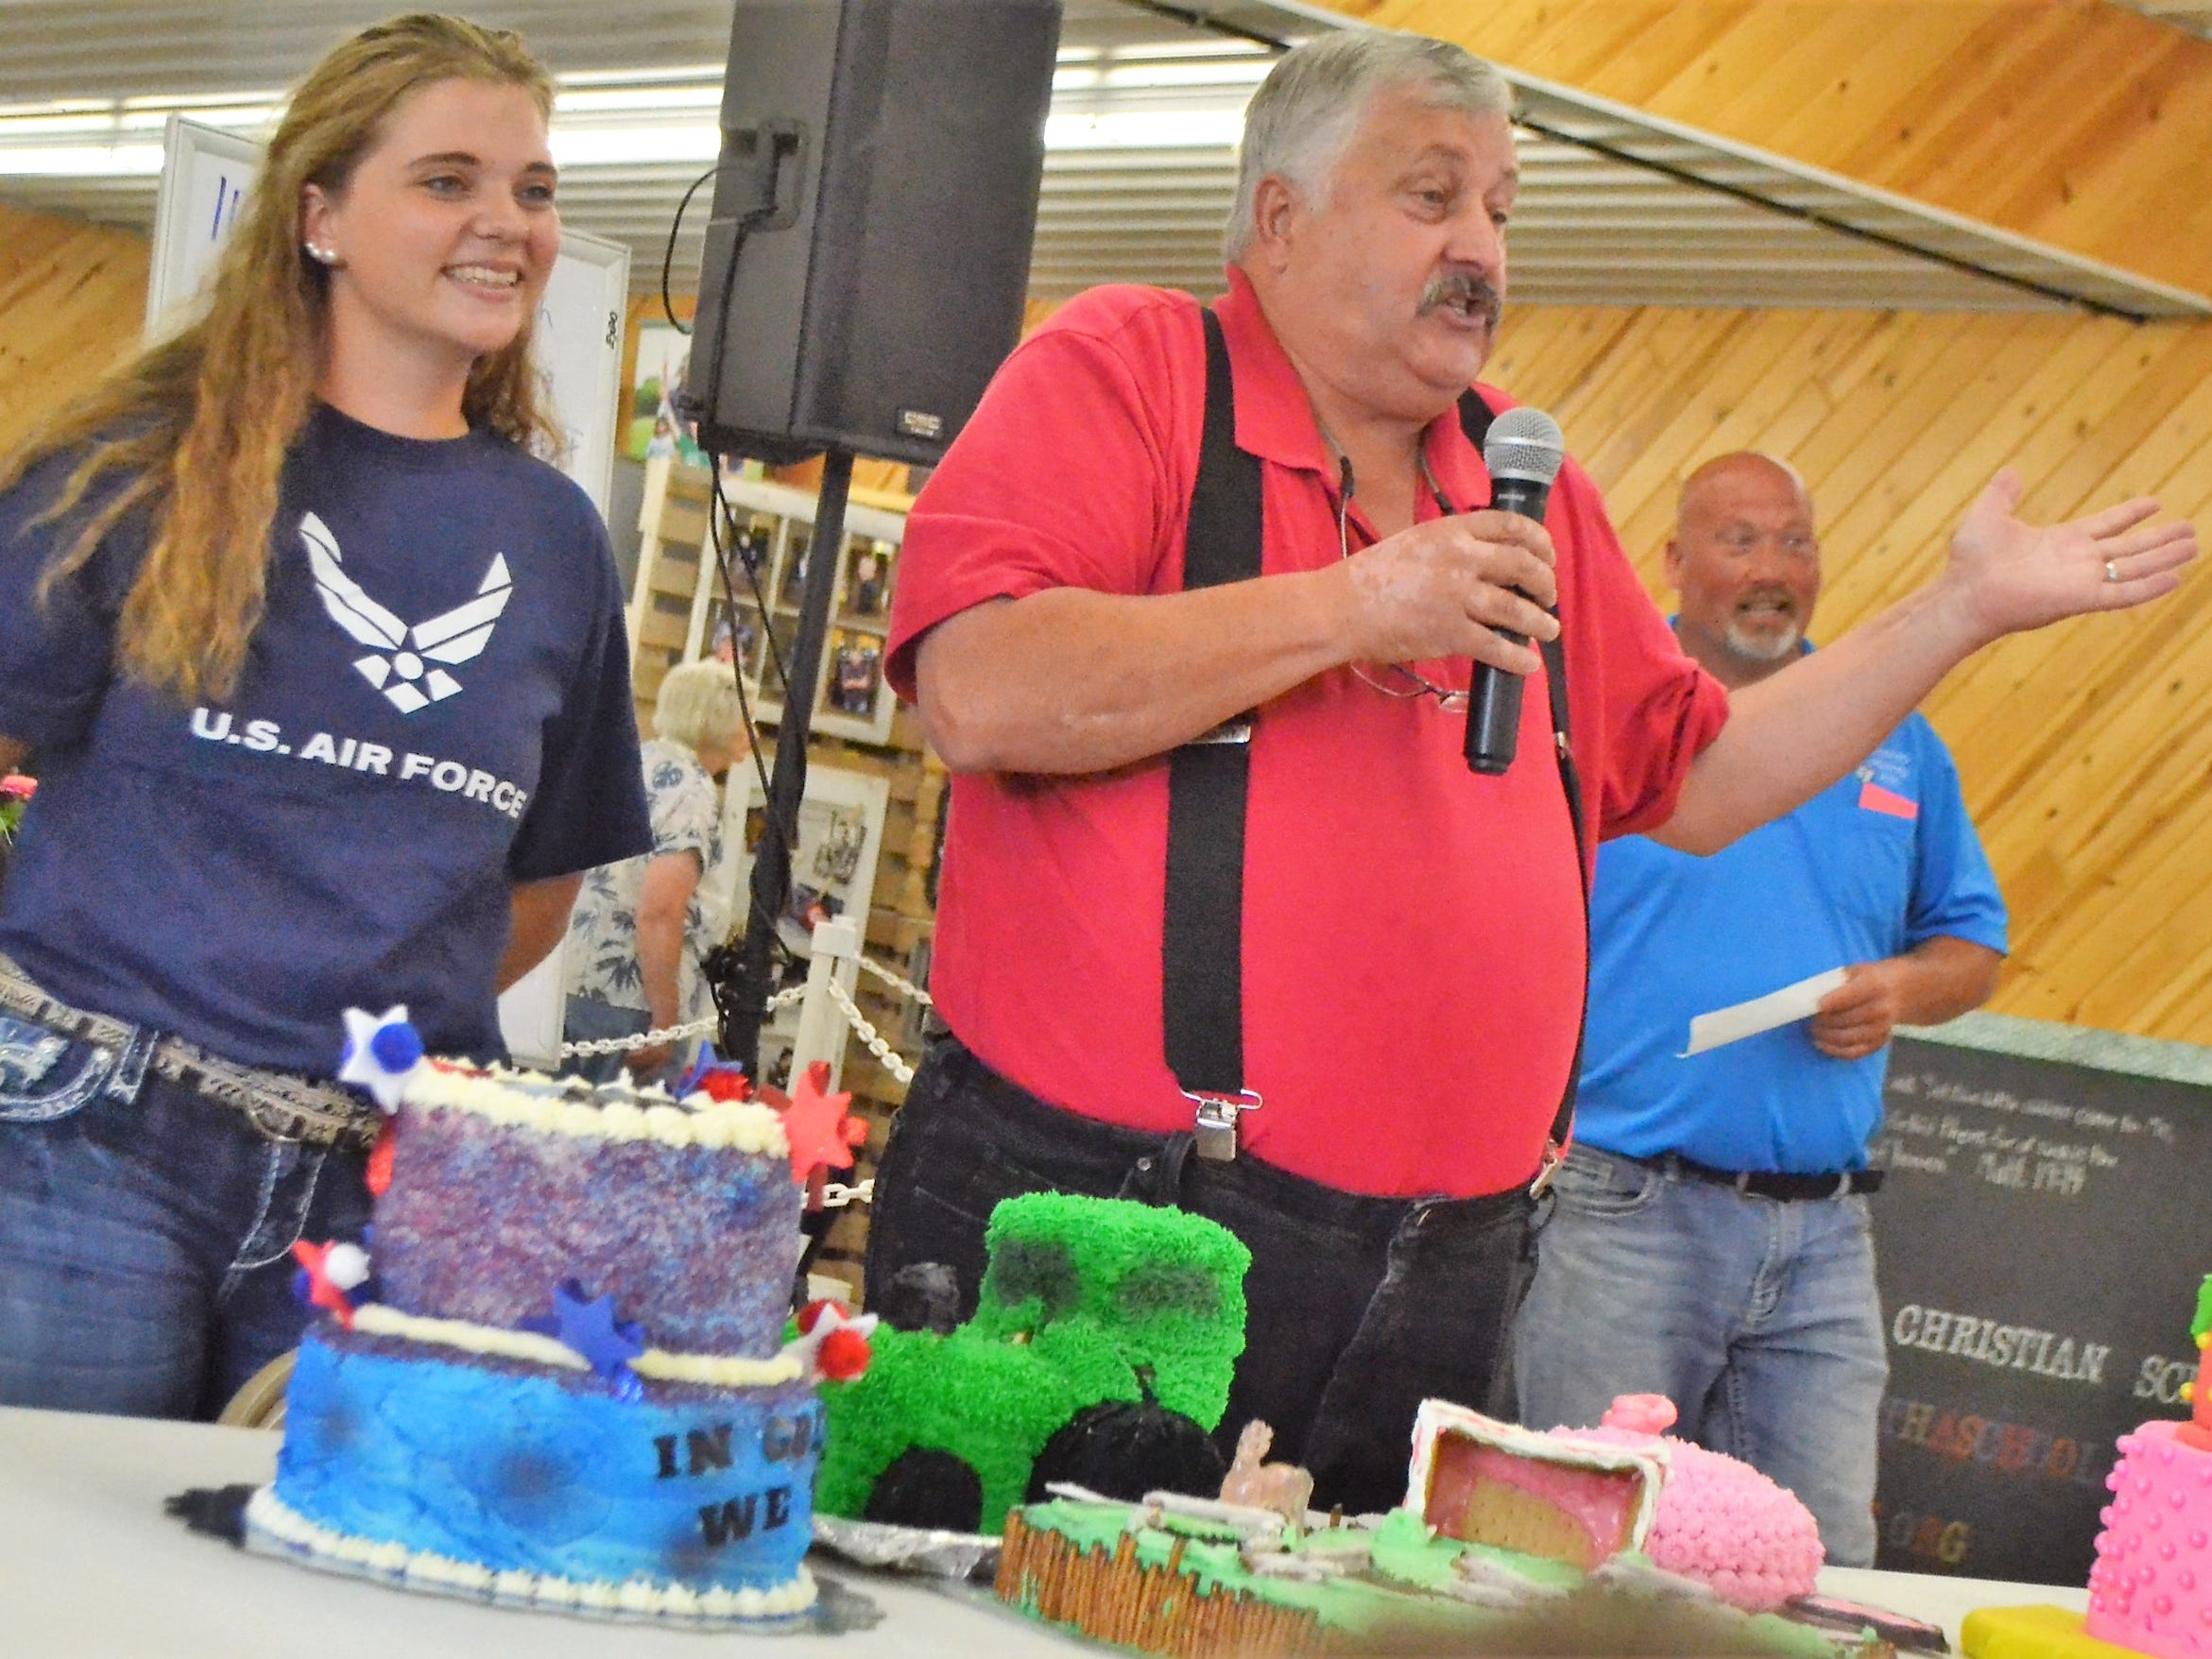 Auctioneer Jeff Bahrke of Gillett urges a higher bid  for the cake of Hannah Brock, left, during the Decorated Cake Auction at the Oconto County Fair on Saturday, Aug. 18. Brock made the cake, with a military theme, because she was entering the Air Force in a few weeks, and she wanted to donate the proceeds to Wounded Warrior Project. The cake was purchased by her grandfather, Russel Brock, for $775, who  donated the cake back to be auctioned again, with proceeds being donated to the fair. The cake was sold then for $400.